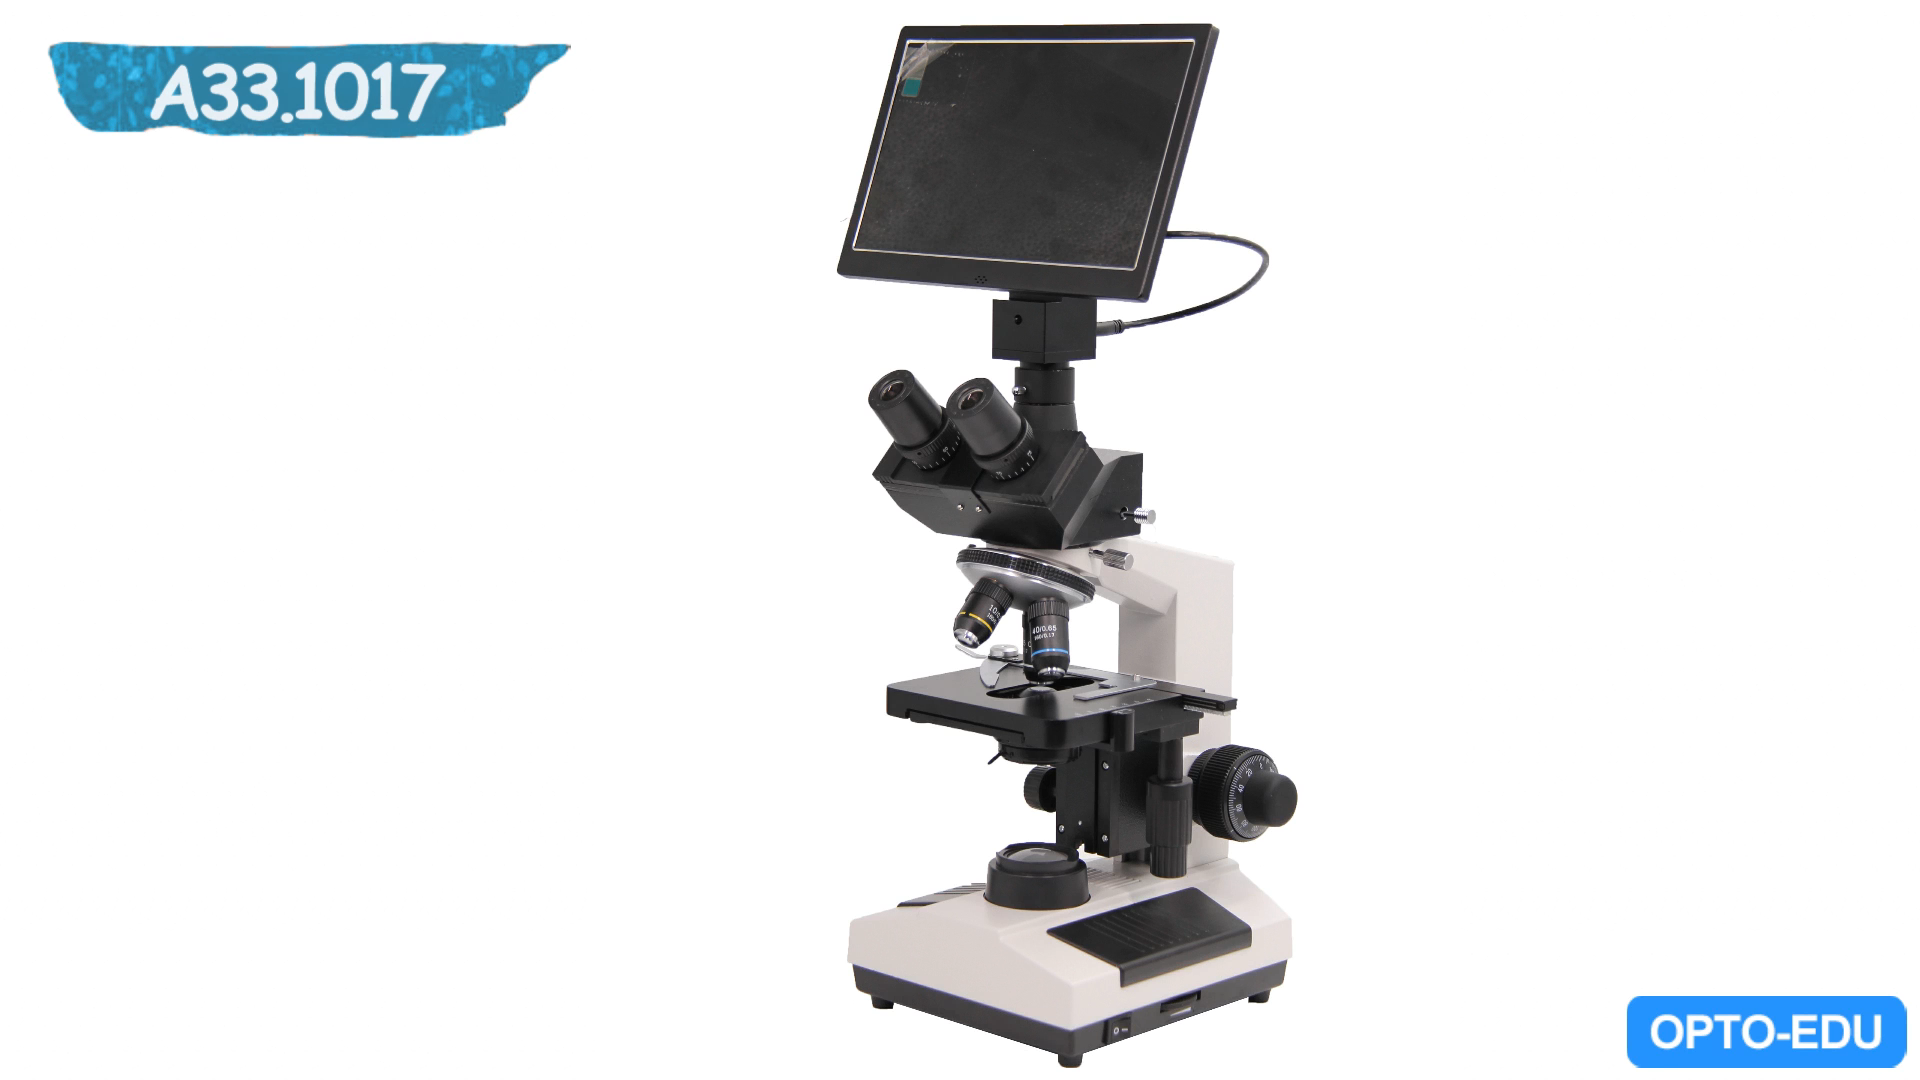 OPTO-EDU A33.1017 1000x xsz 107bn digital lcd microscope trinocular camera